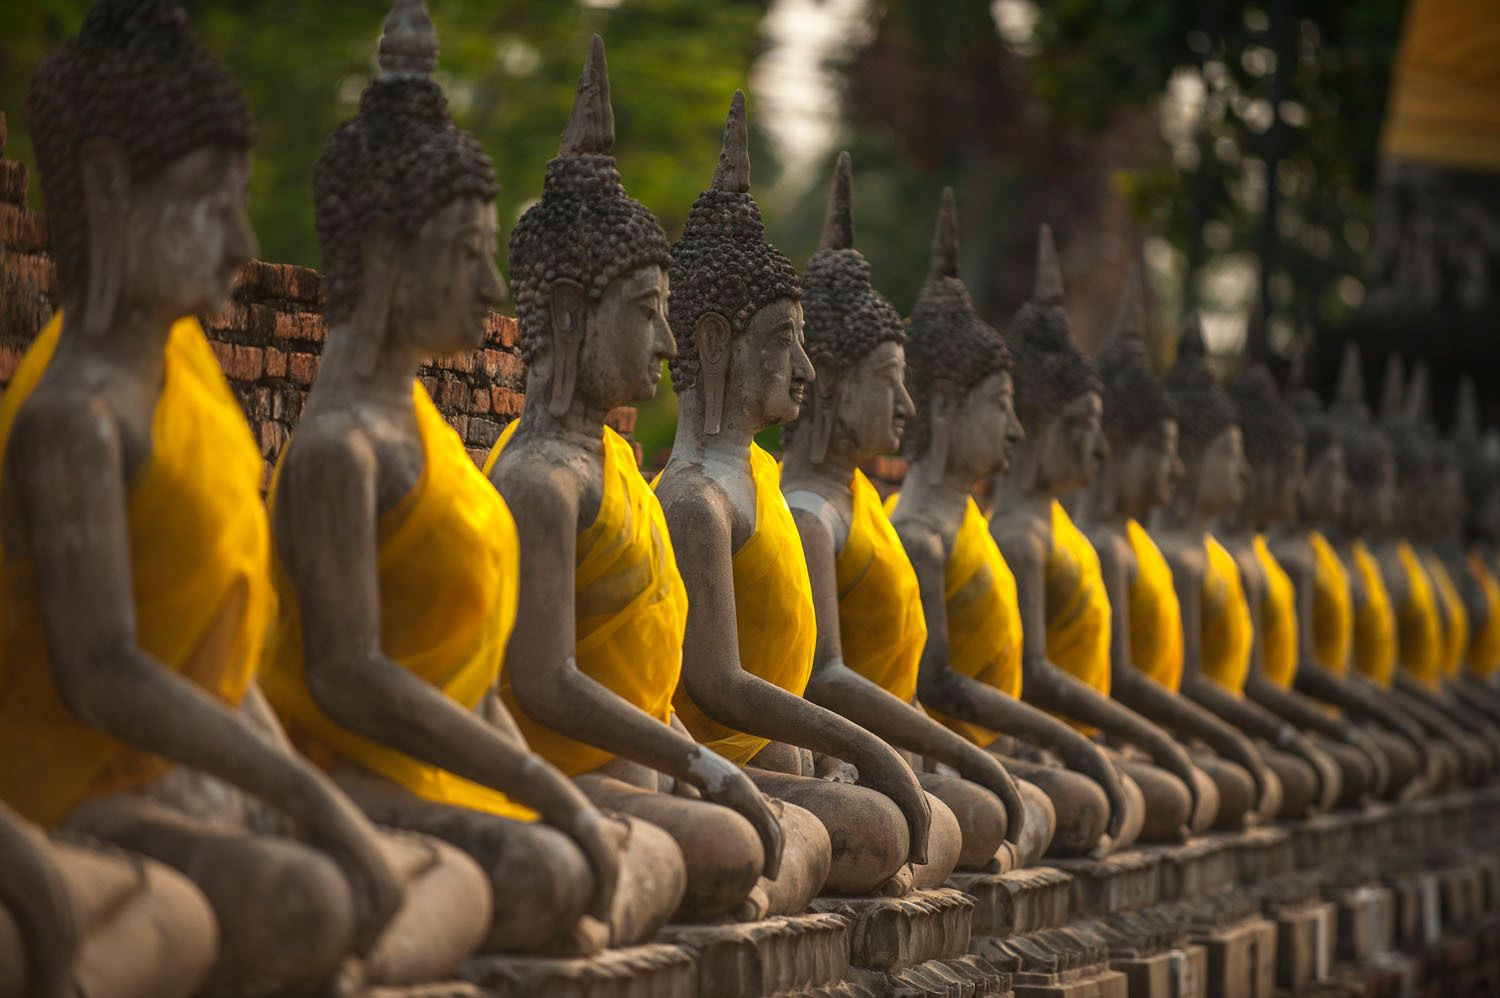 Row of Stone Buddhas with Saffron Sashes